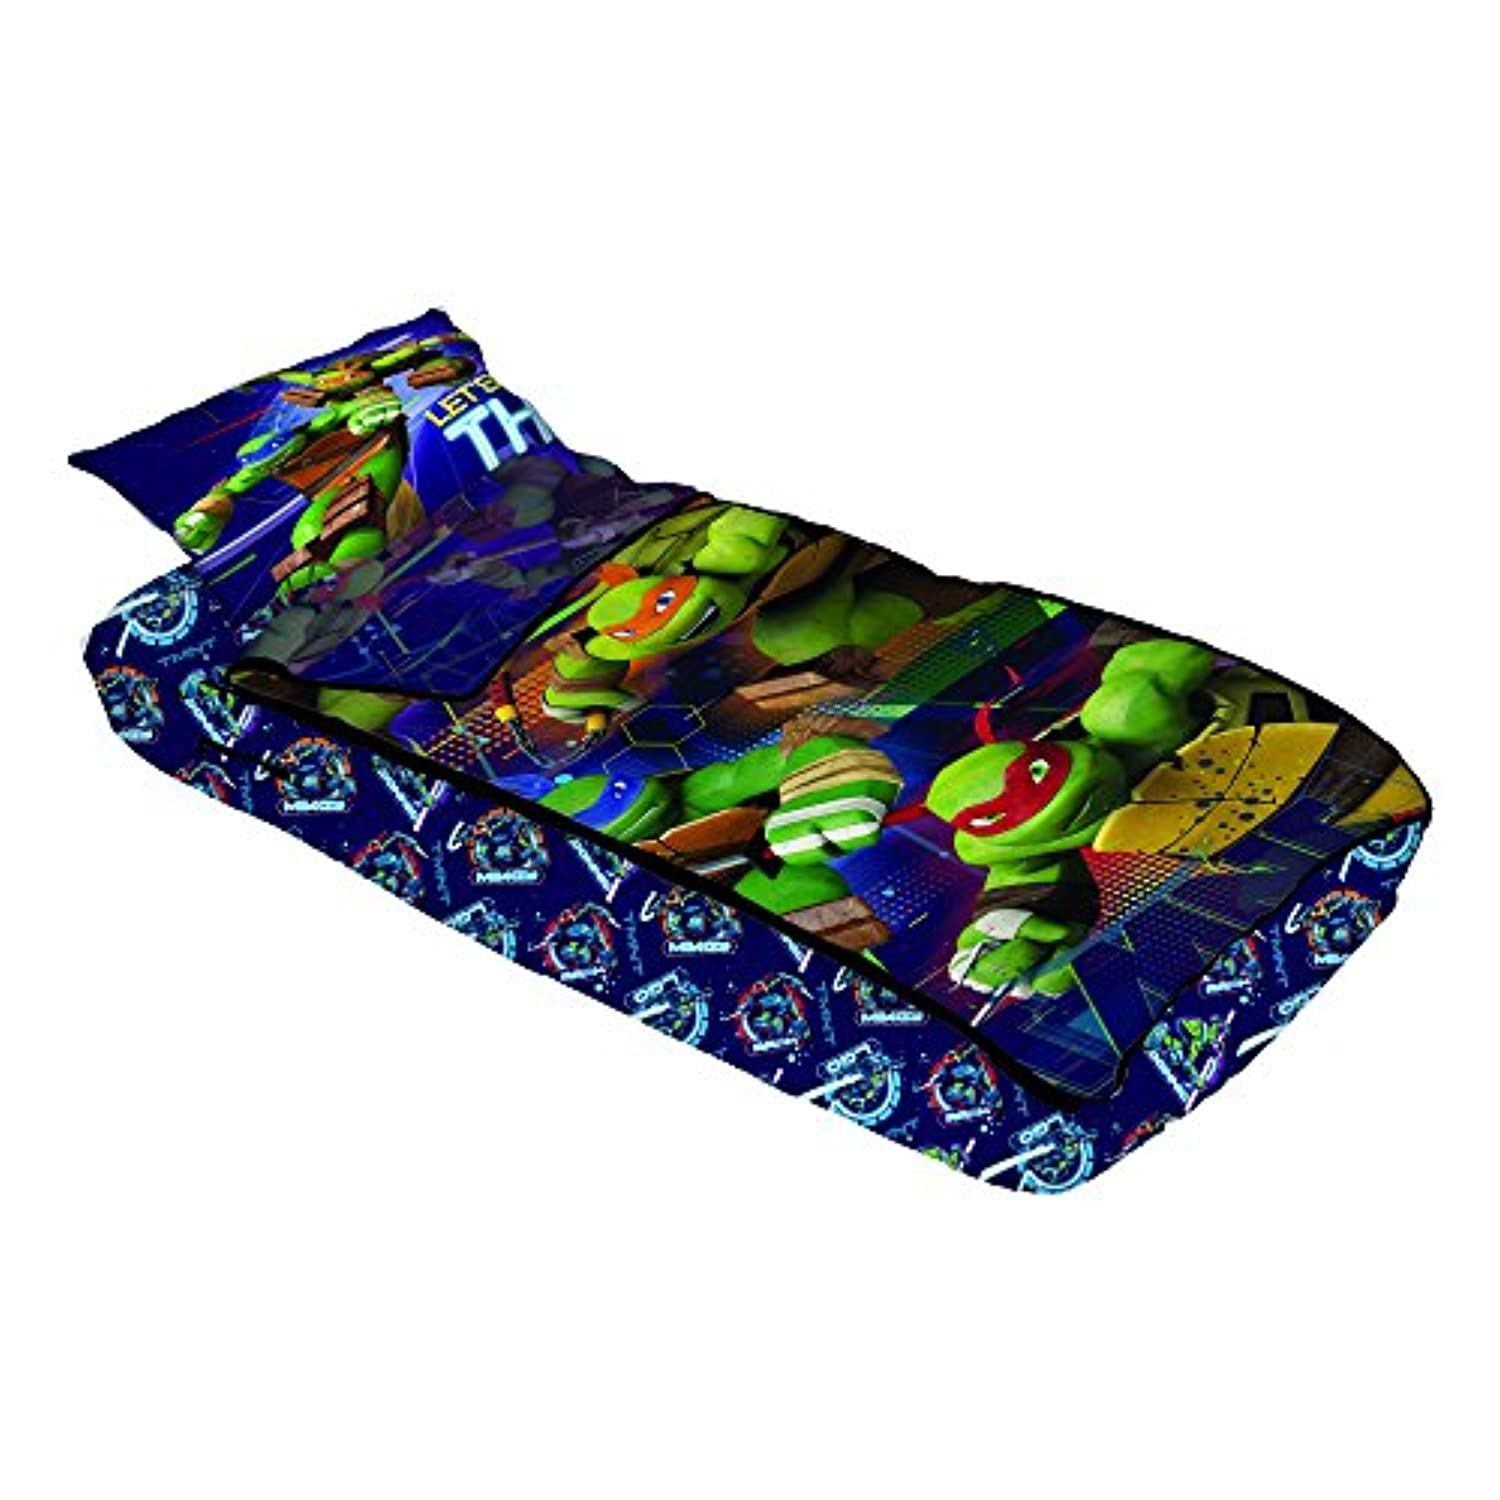 [ニコロデオン]Nickelodeon Teenage Mutant Ninja Turtles Primetime ZipIt Bedding MY0118 [並行輸入品]